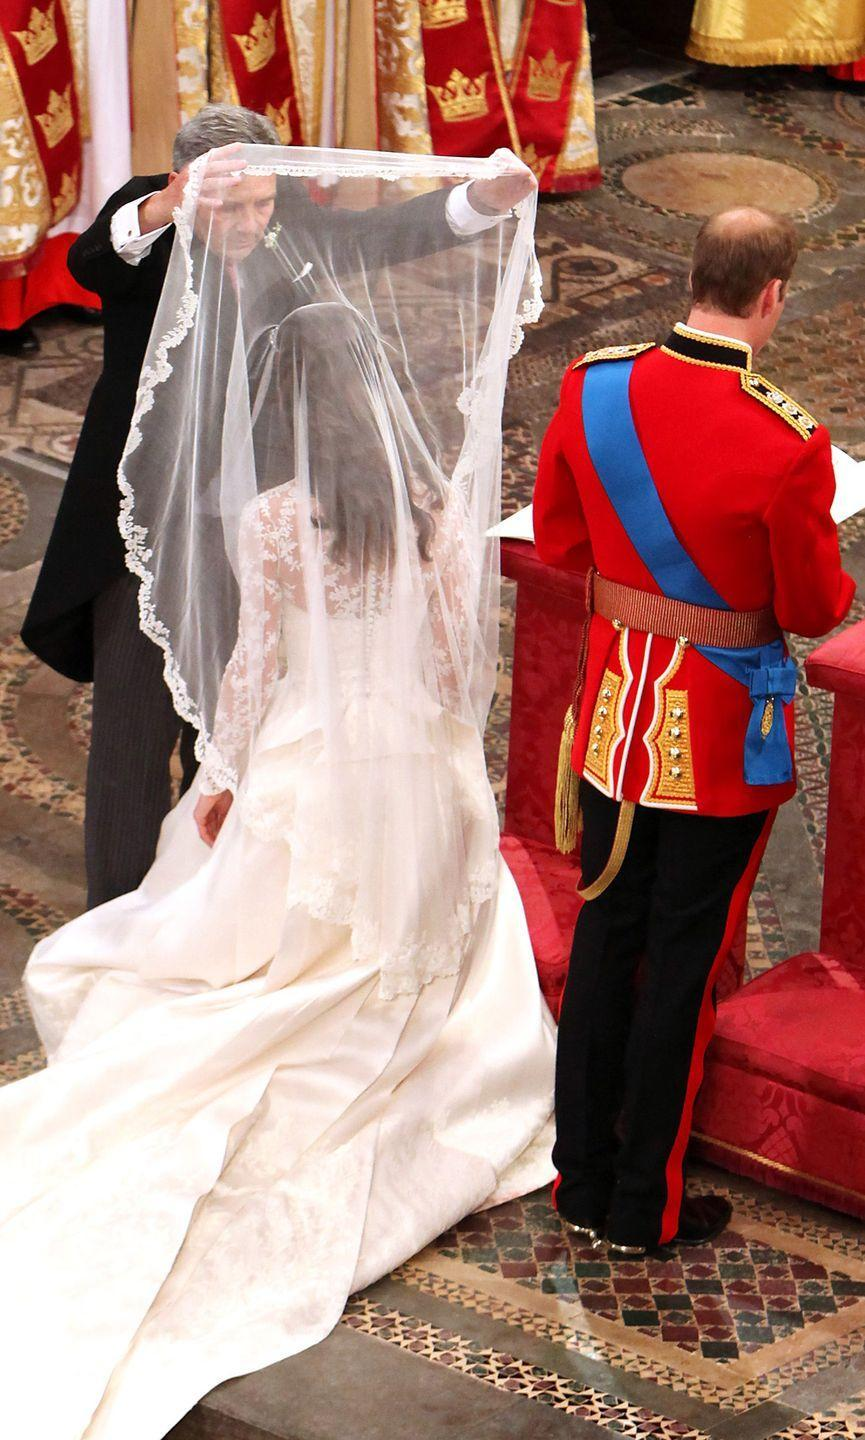 "<p>Kate took her place beside William after her father Michael lifted her veil. 'You look beautiful,' the groom told his bride.</p><p>Watch the moment Kate walked down the aisle <a href=""https://www.youtube.com/watch?v=5u6-CpU-1EY"" rel=""nofollow noopener"" target=""_blank"" data-ylk=""slk:here"" class=""link rapid-noclick-resp"">here</a>.</p>"